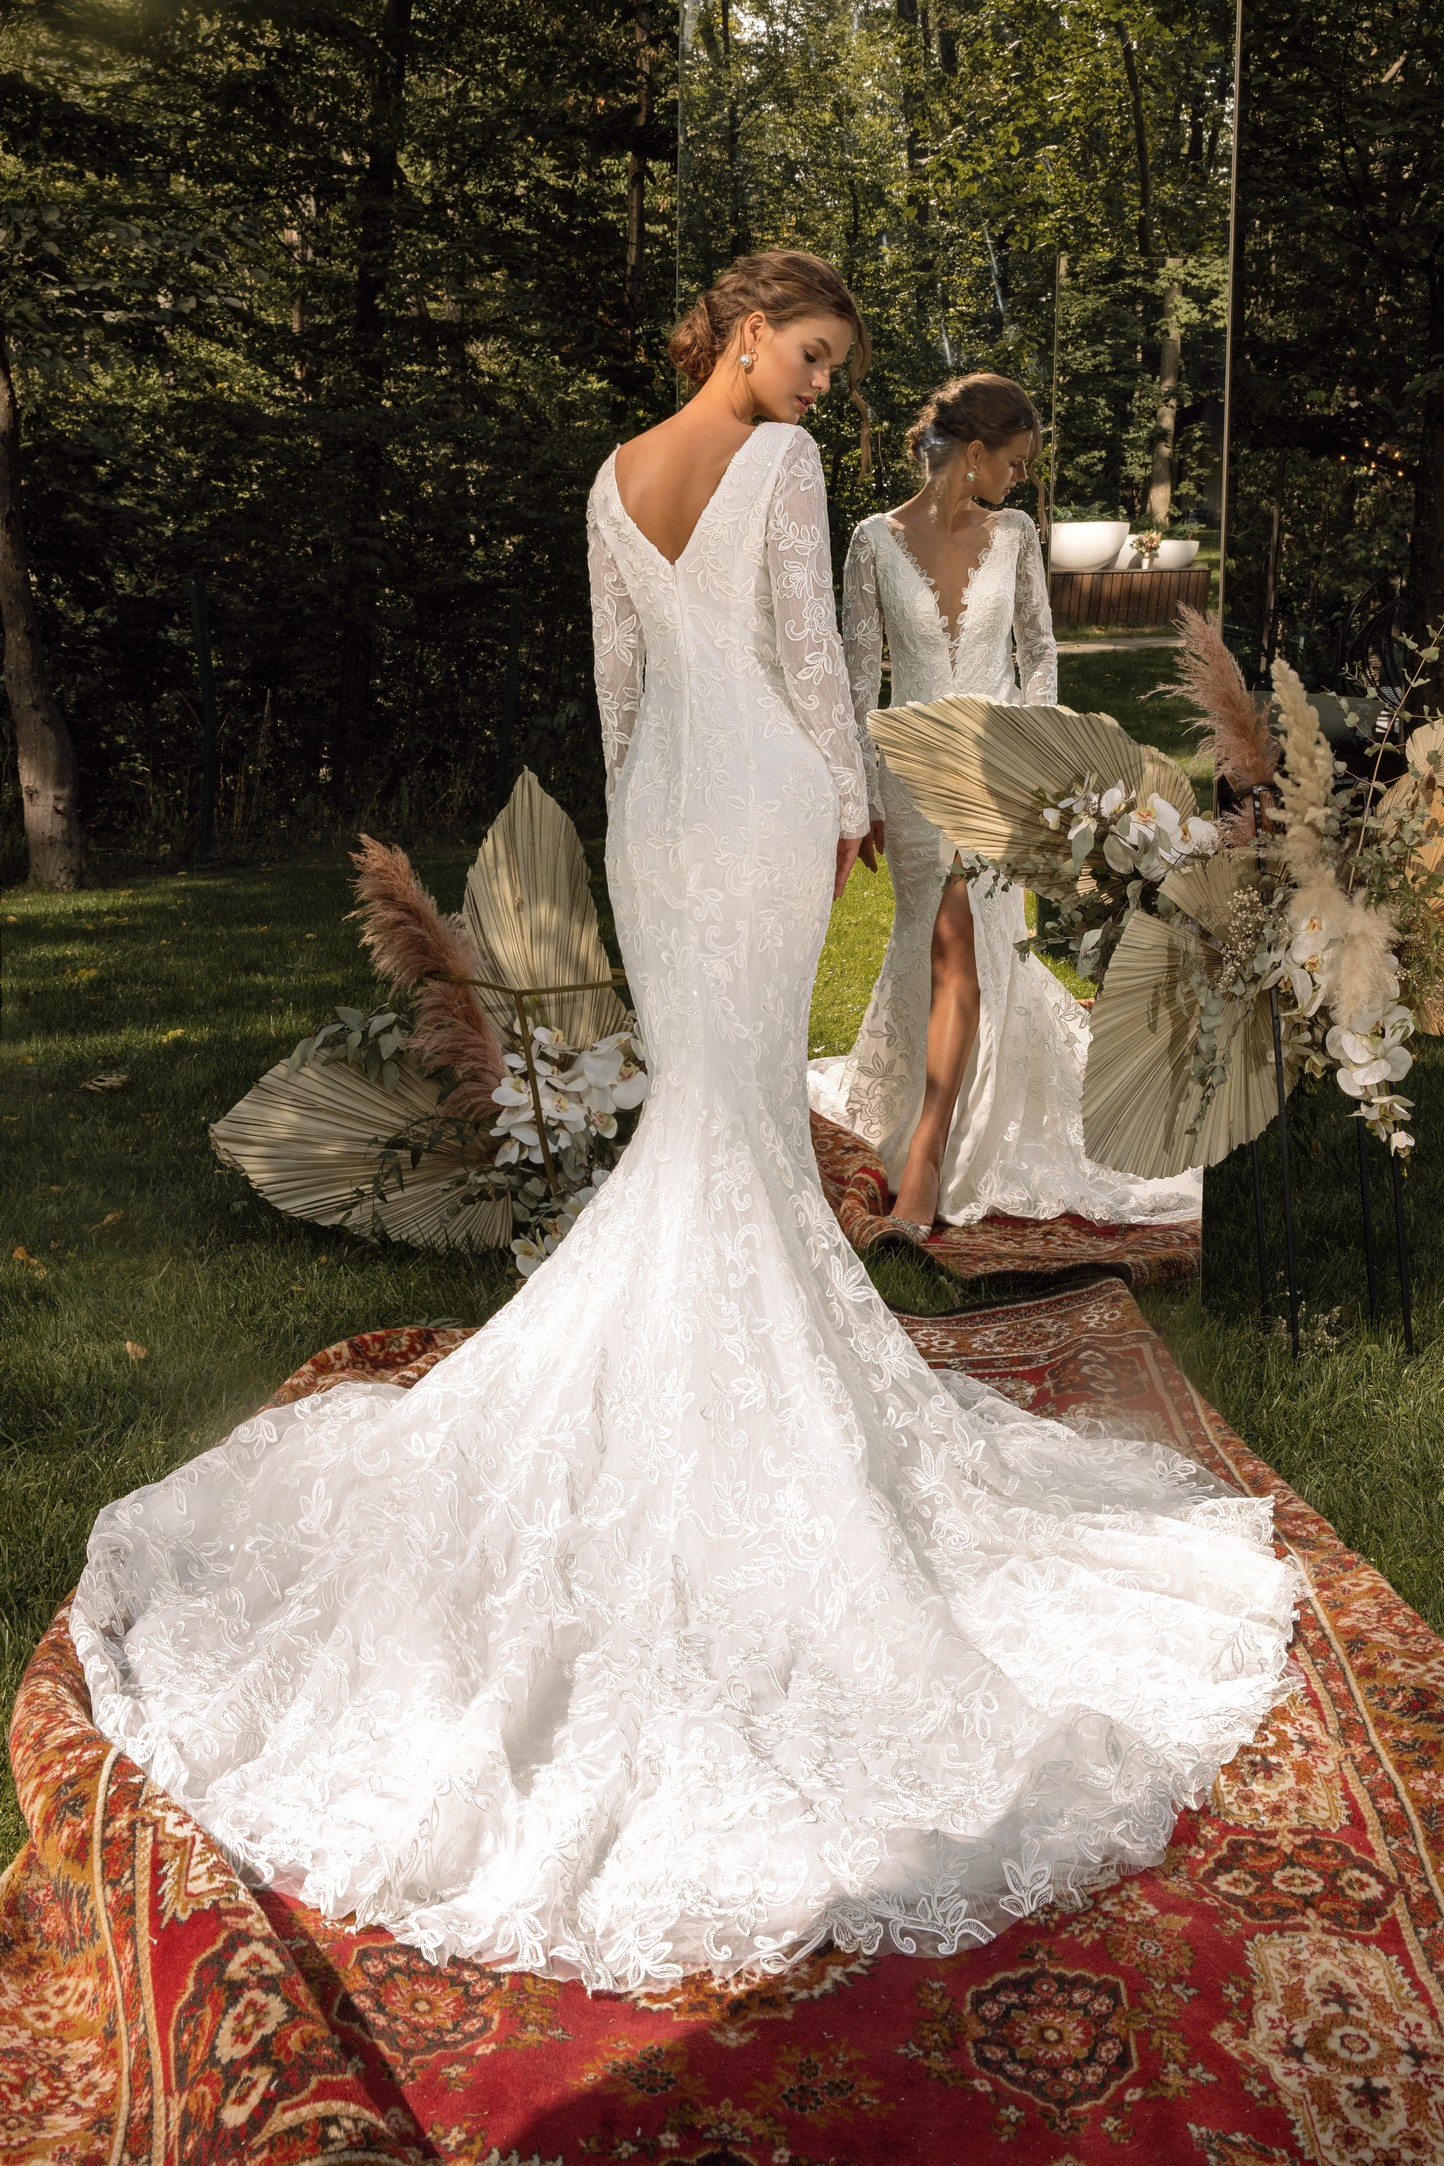 Lace A-line Wedding Dress With Corset Bodice, Ruched Long Sleeves And Bow Neck_1